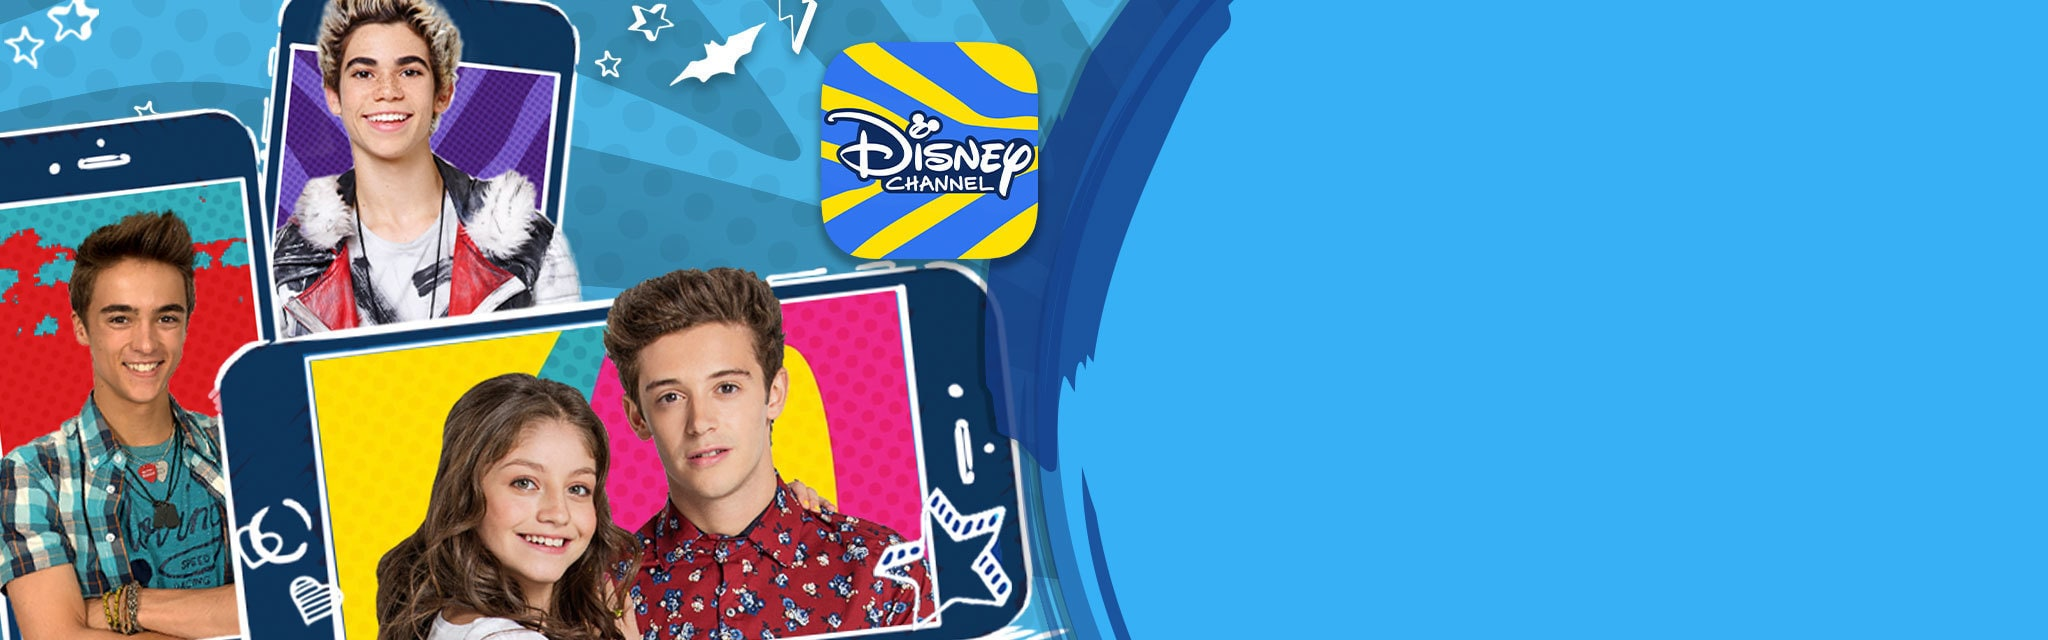 Disney Channel: App - Homepage (hero)